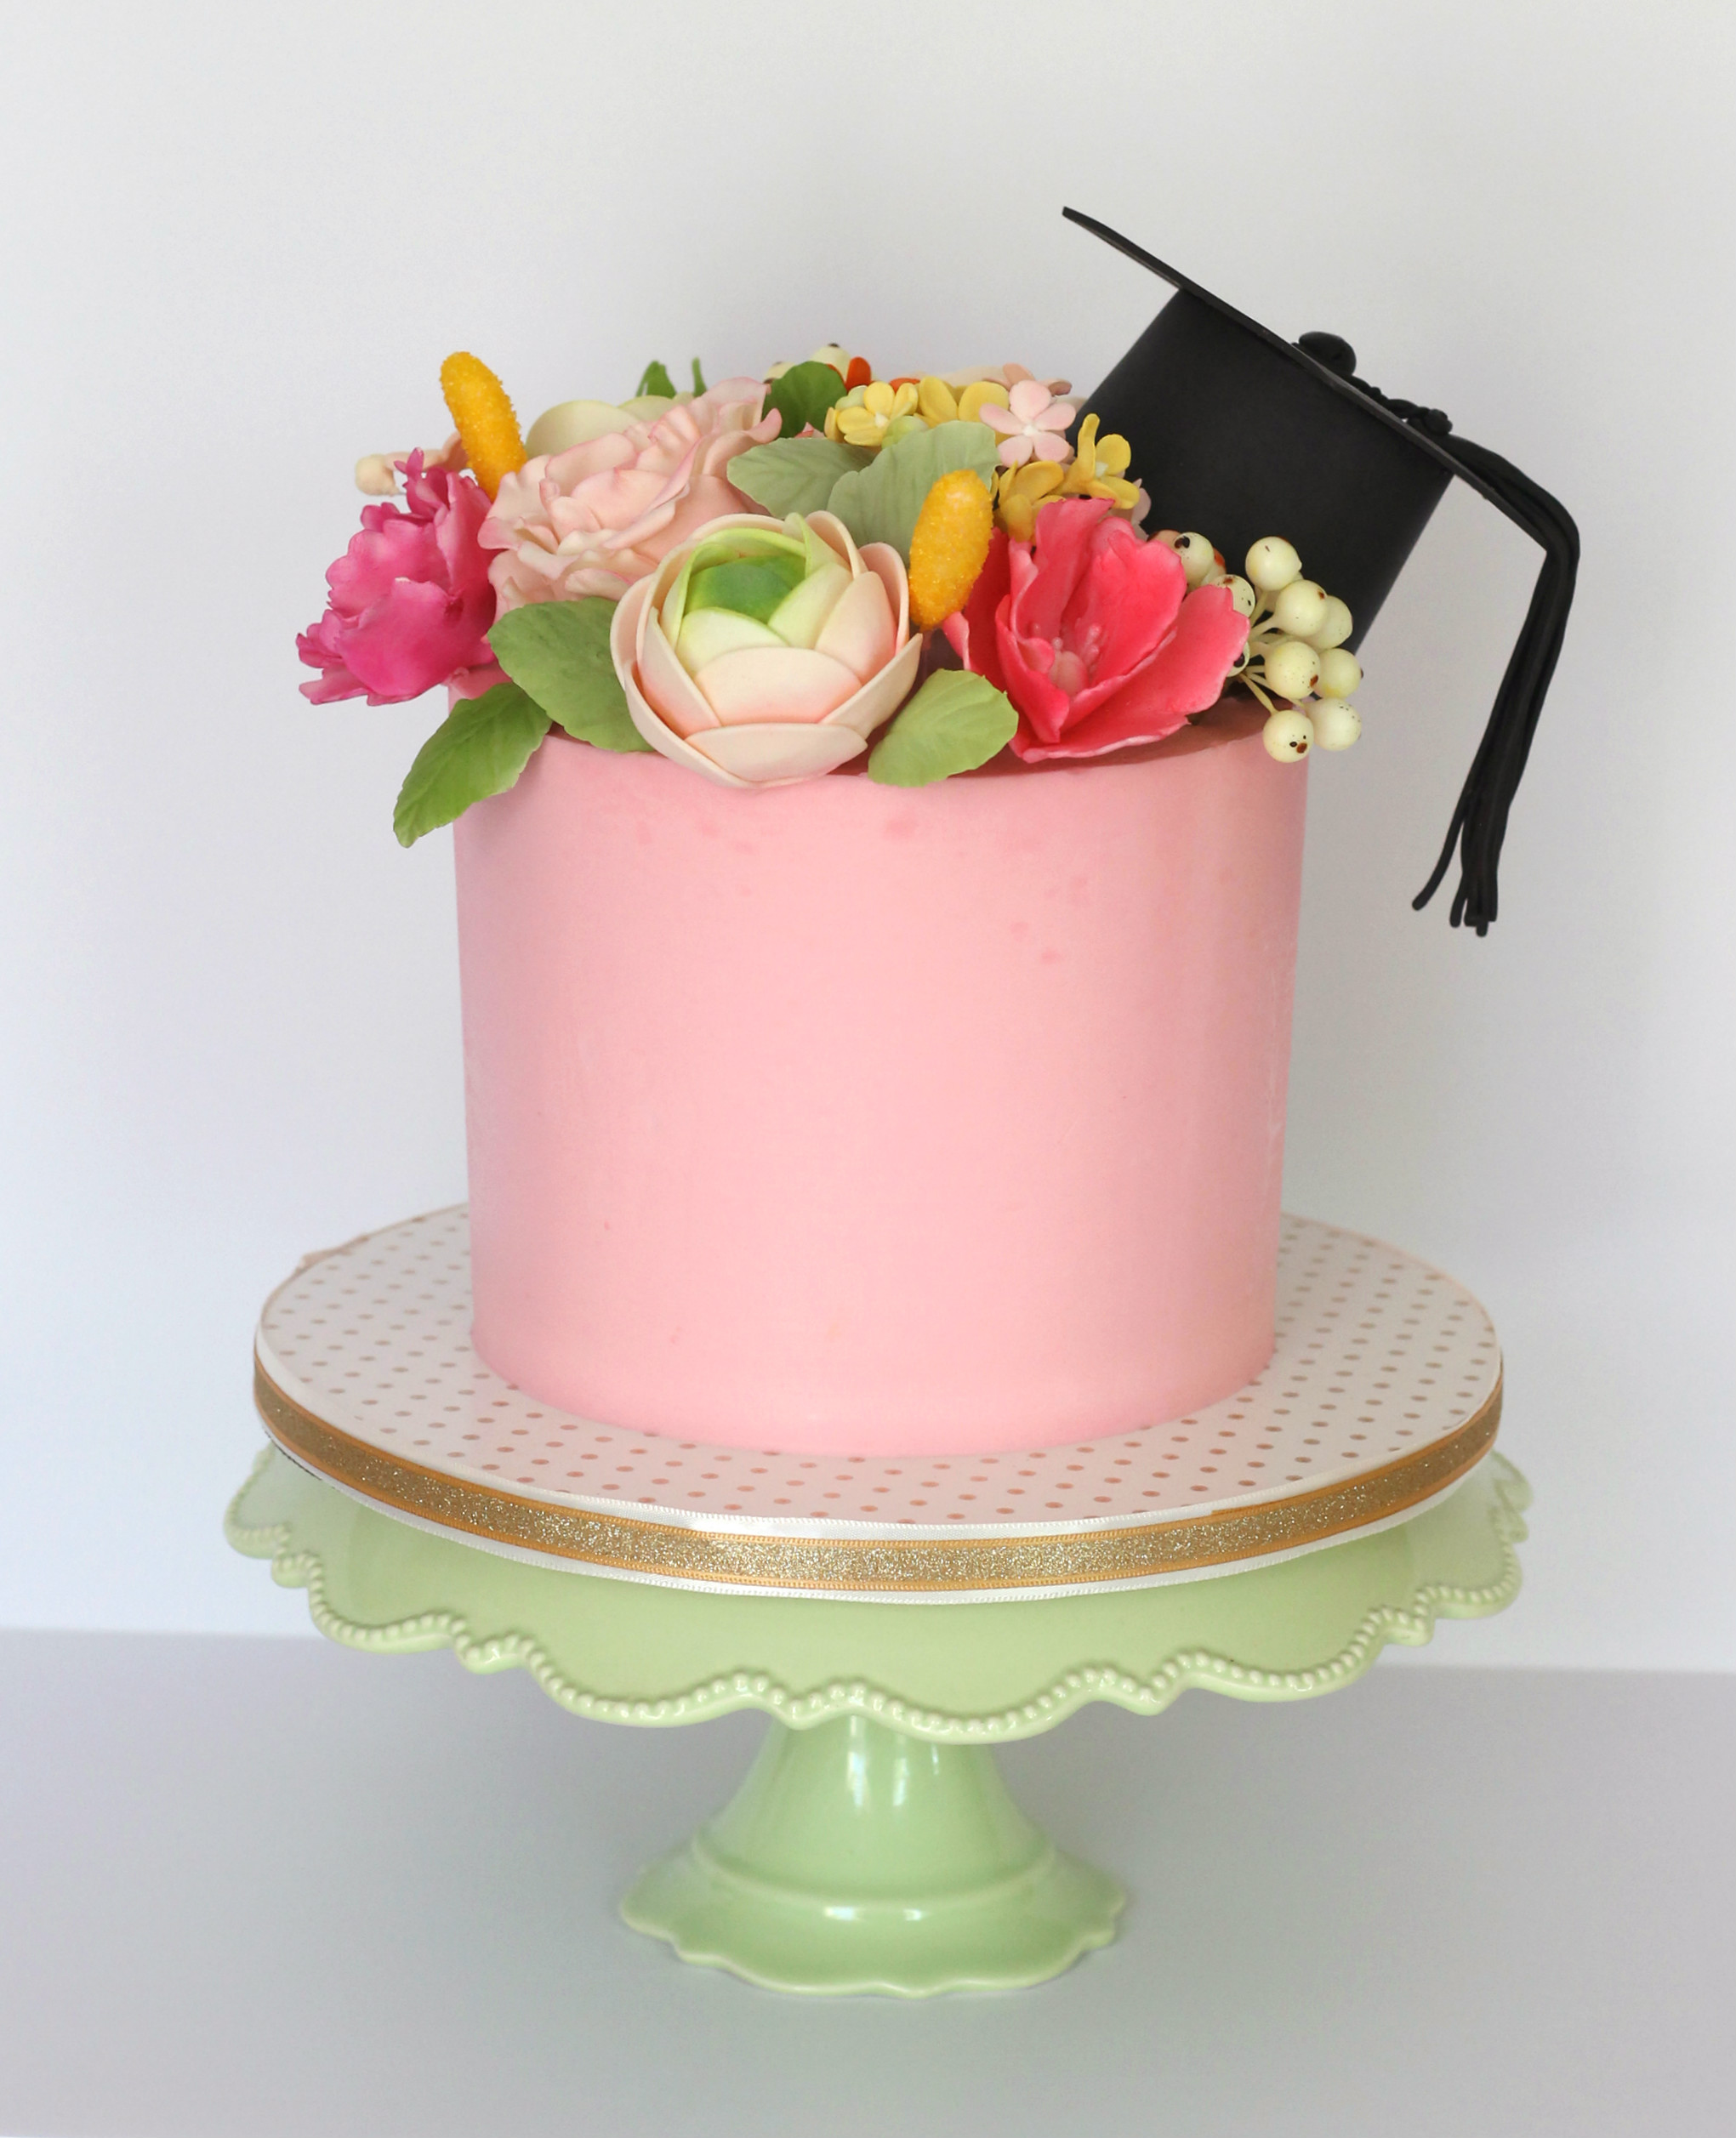 Graduation Cake with Sugar Flowers